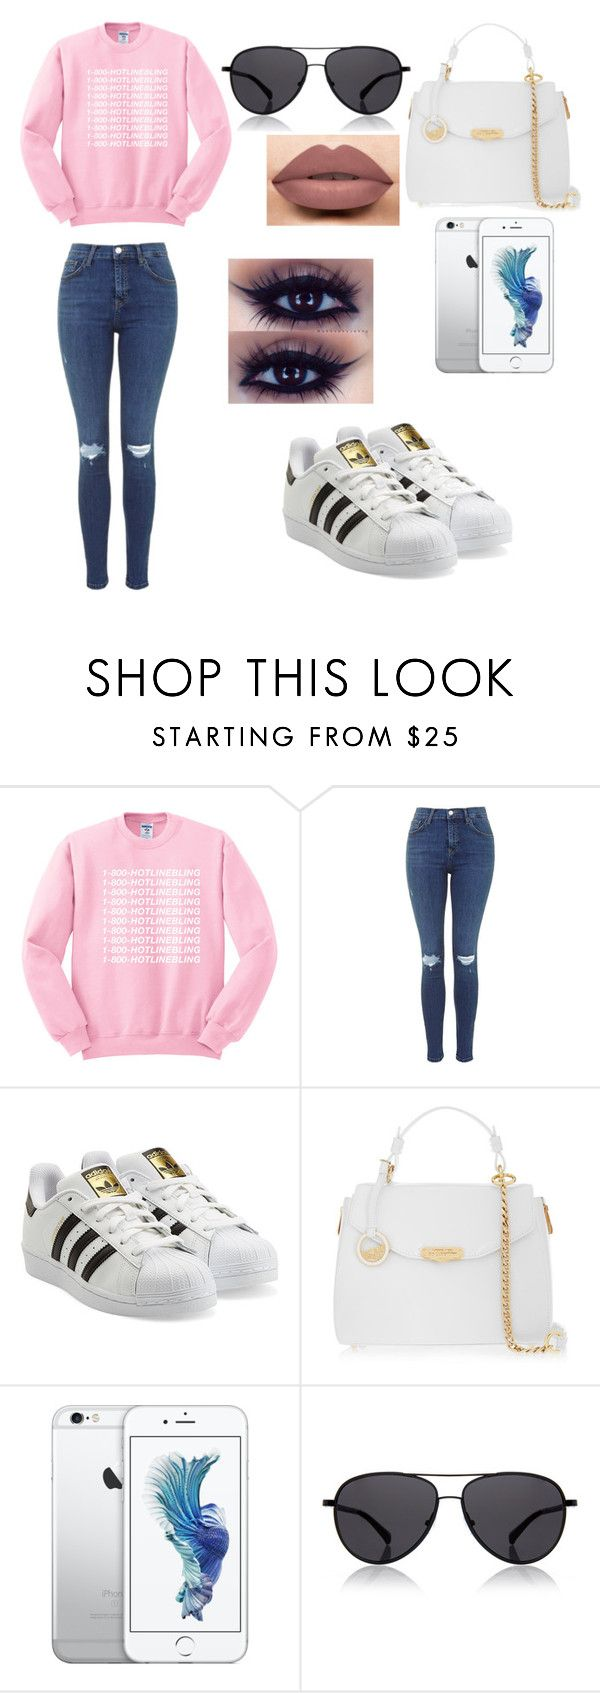 """""""Trap Queen"""" by junebug02 ❤ liked on Polyvore featuring adidas Originals, Versace, The Row and LASplash"""